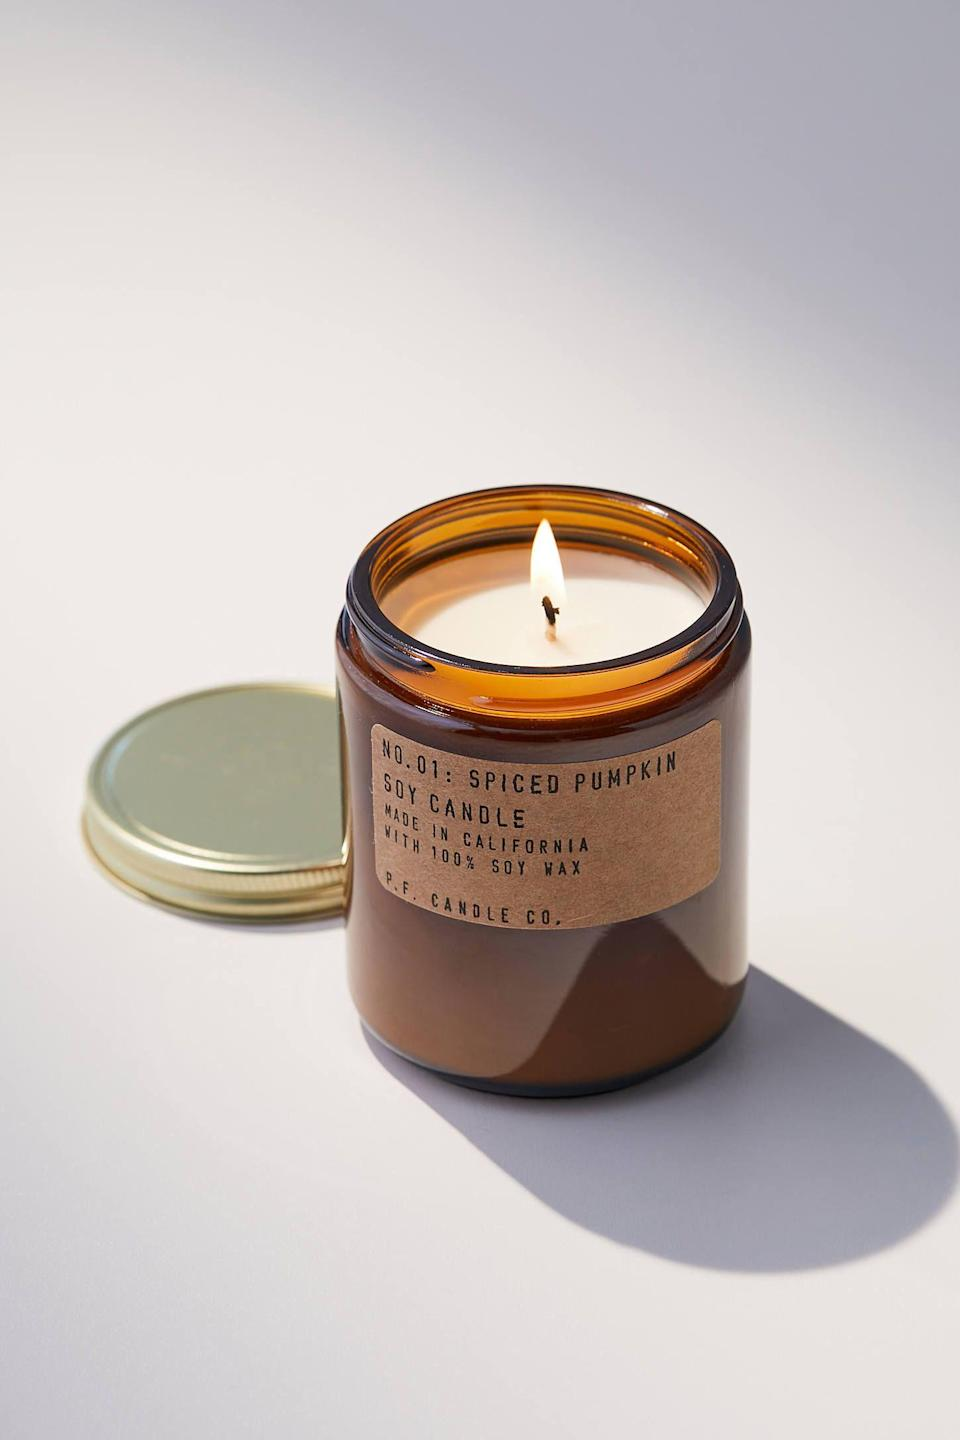 """<p><strong>P.F. Candle Co.</strong></p><p><strong>$20.00</strong></p><p><a href=""""https://go.redirectingat.com?id=74968X1596630&url=https%3A%2F%2Fwww.urbanoutfitters.com%2Fshop%2Fpf-candle-co-amber-jar-holiday-candle&sref=https%3A%2F%2Fwww.elledecor.com%2Fshopping%2Fhome-accessories%2Fg37938966%2Fbest-pumpkin-spice-decor%2F"""" rel=""""nofollow noopener"""" target=""""_blank"""" data-ylk=""""slk:Shop Now"""" class=""""link rapid-noclick-resp"""">Shop Now</a></p><p>This soy candle smells like nutmeg, pumpkin, brown sugar, and cinnamon and comes packaged in a reusable amber jar.</p>"""